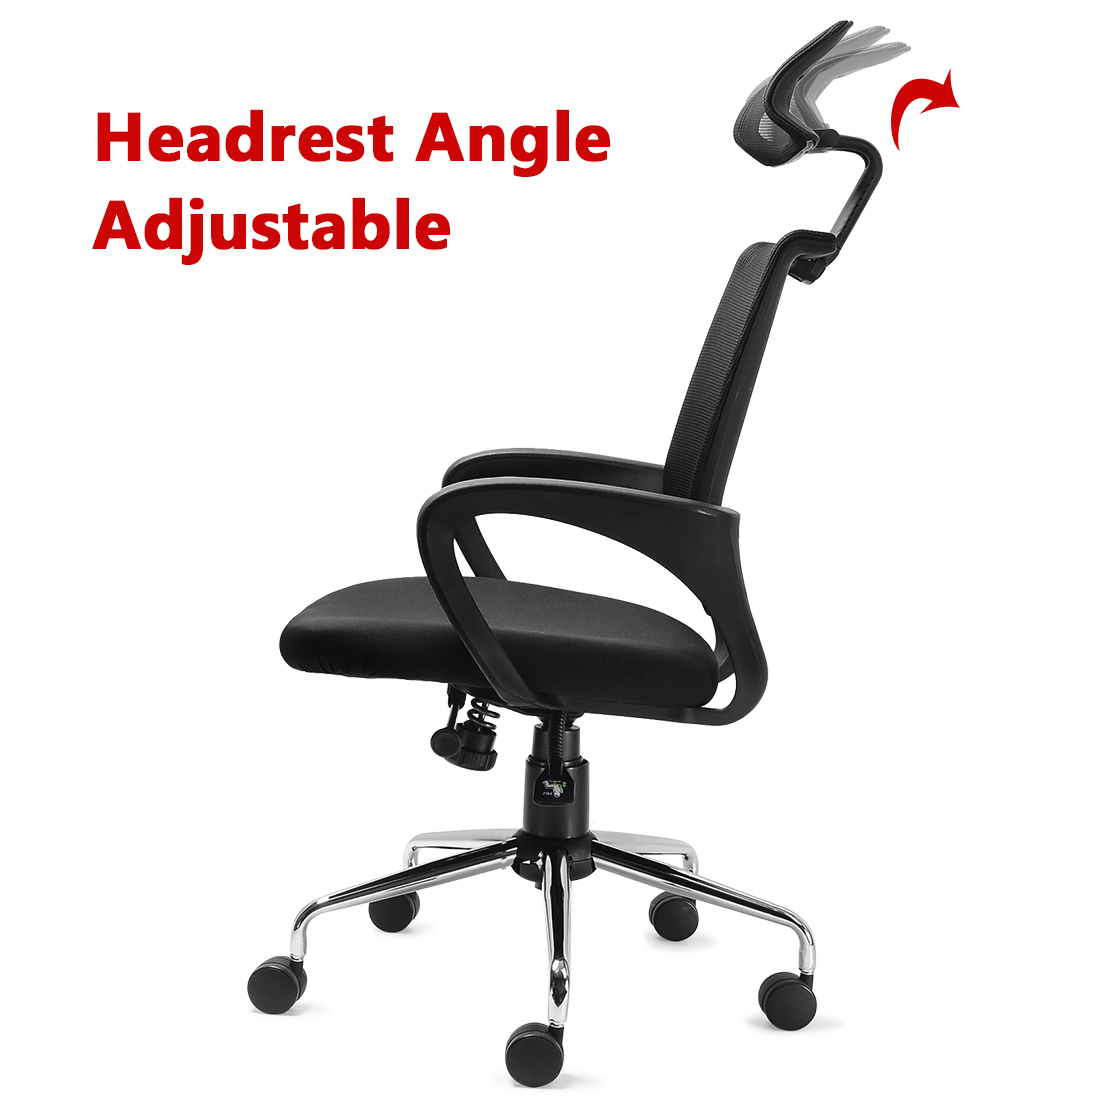 mesh ergonomic office chair with adjustable headrest and lumbar support ebay. Black Bedroom Furniture Sets. Home Design Ideas